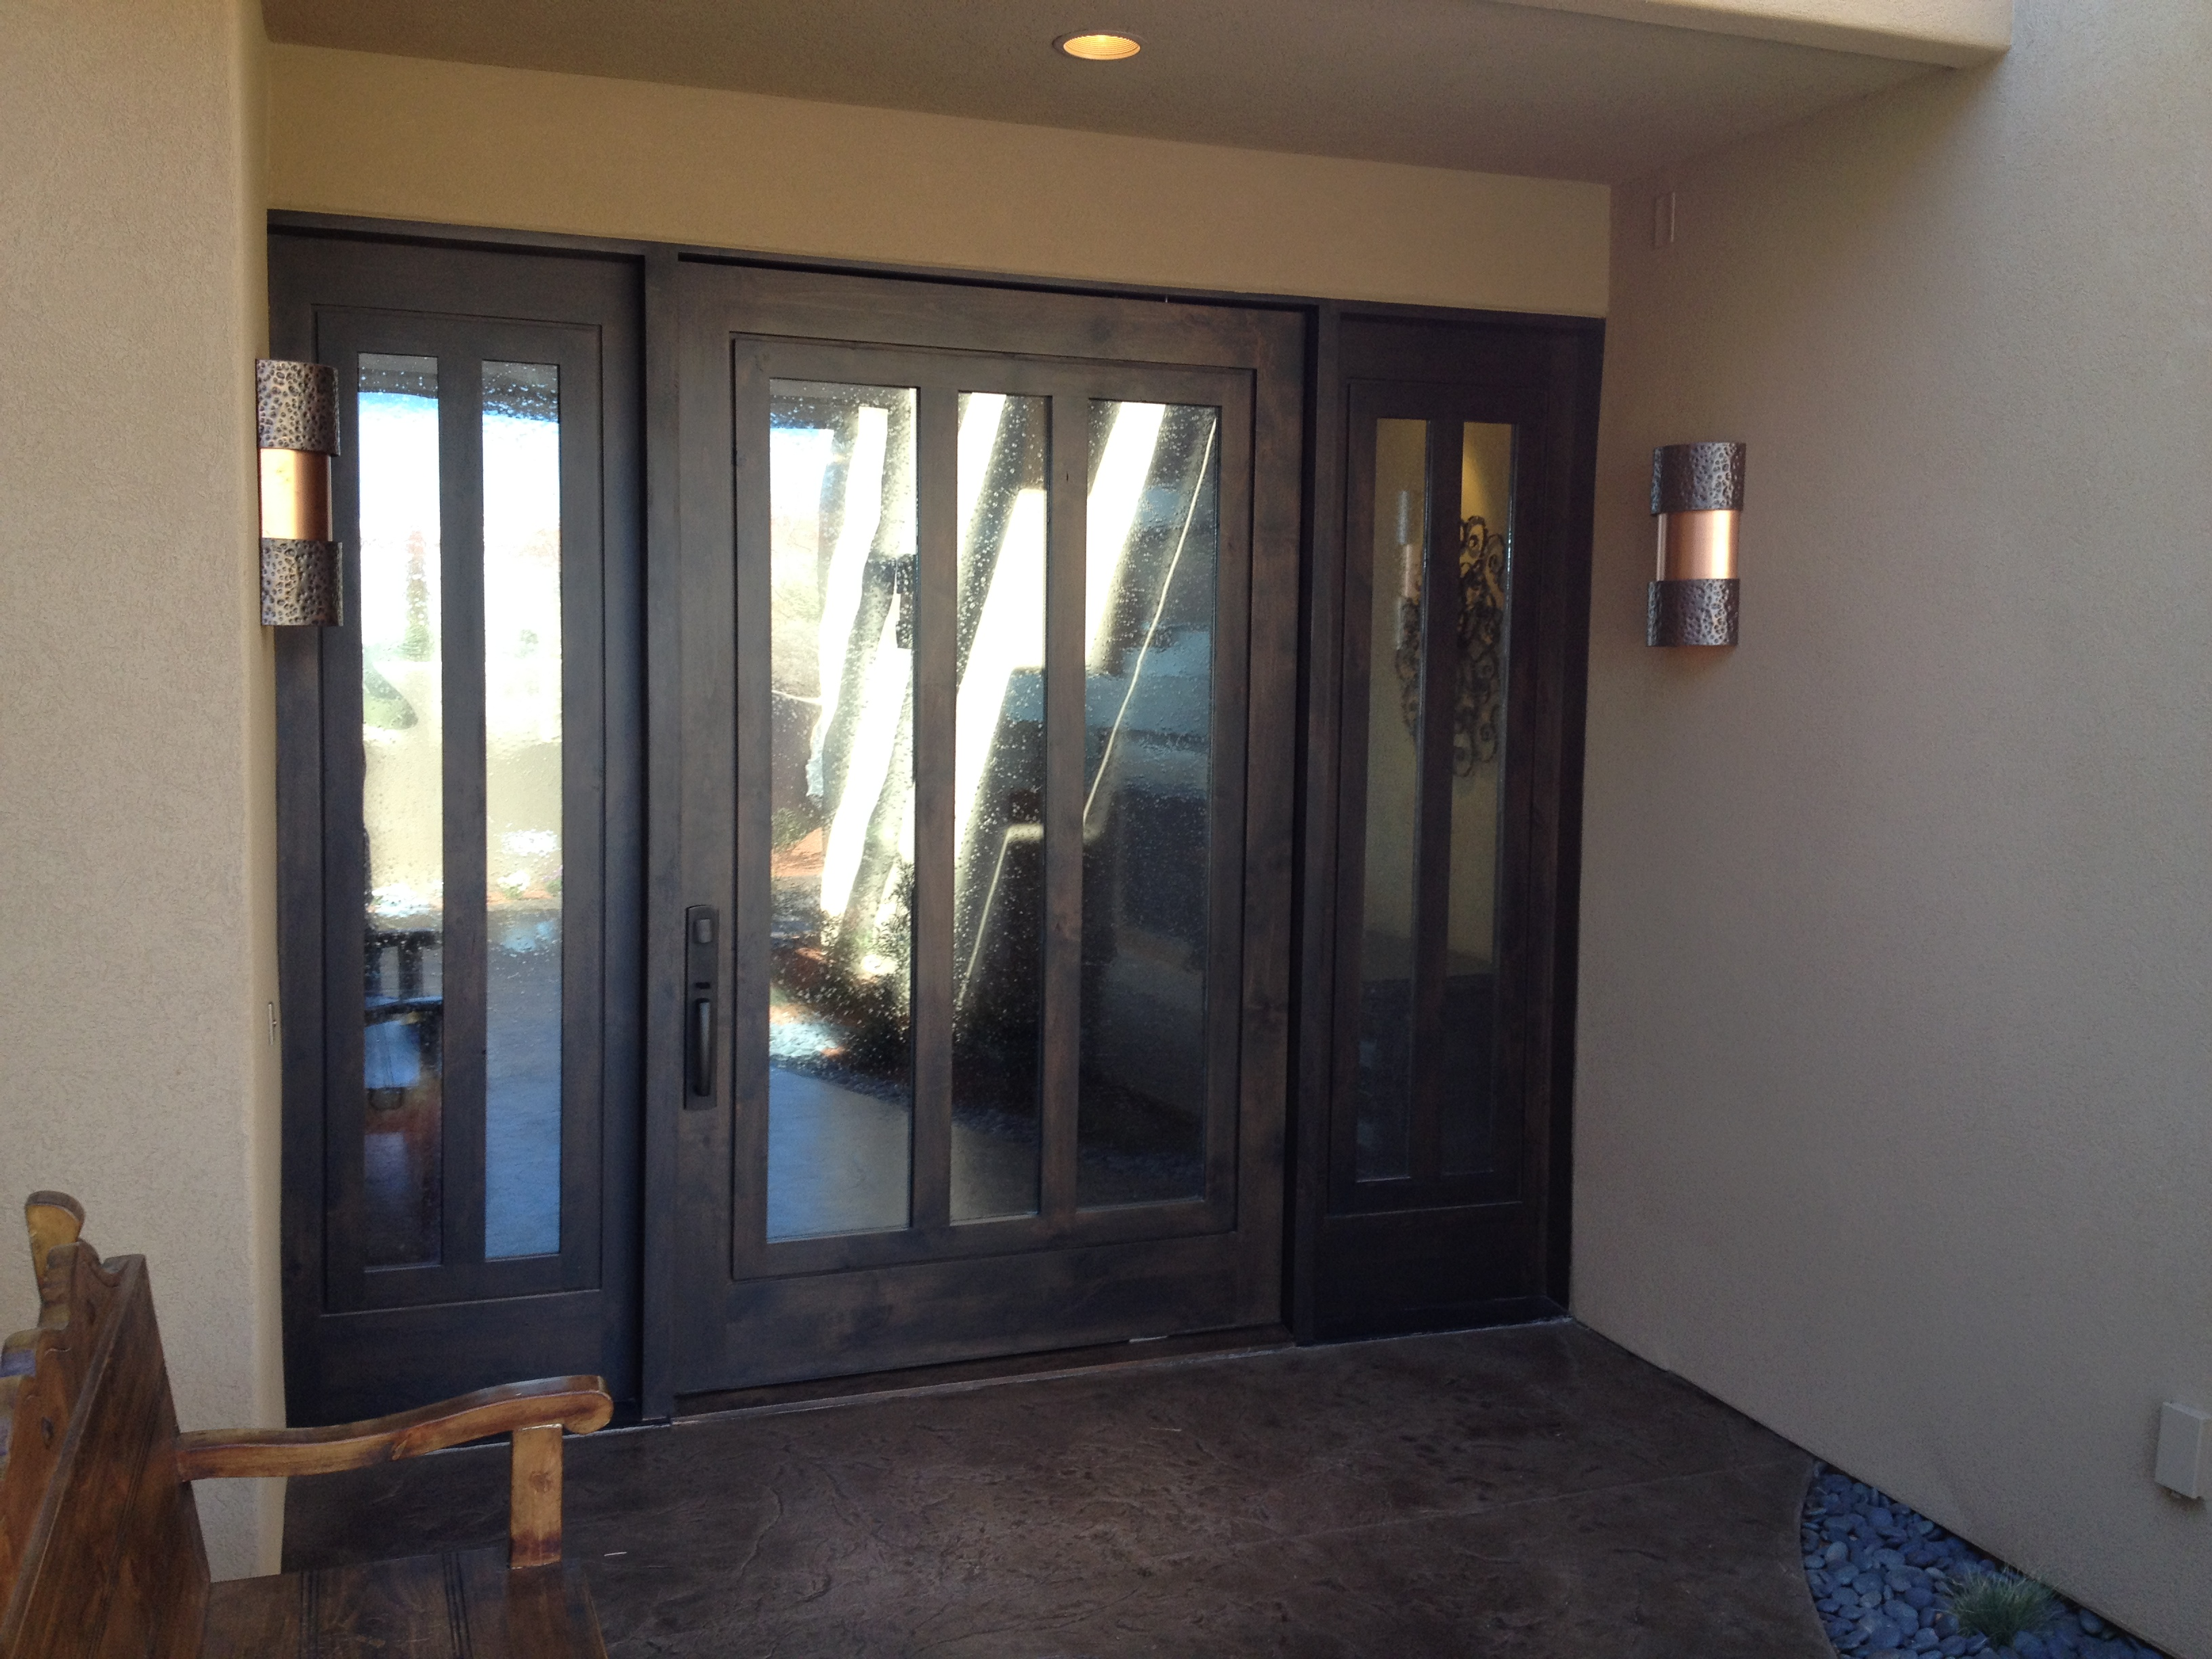 Sunroc at the 2014 St. George Parade of Homes - Clyde Companies Inc.